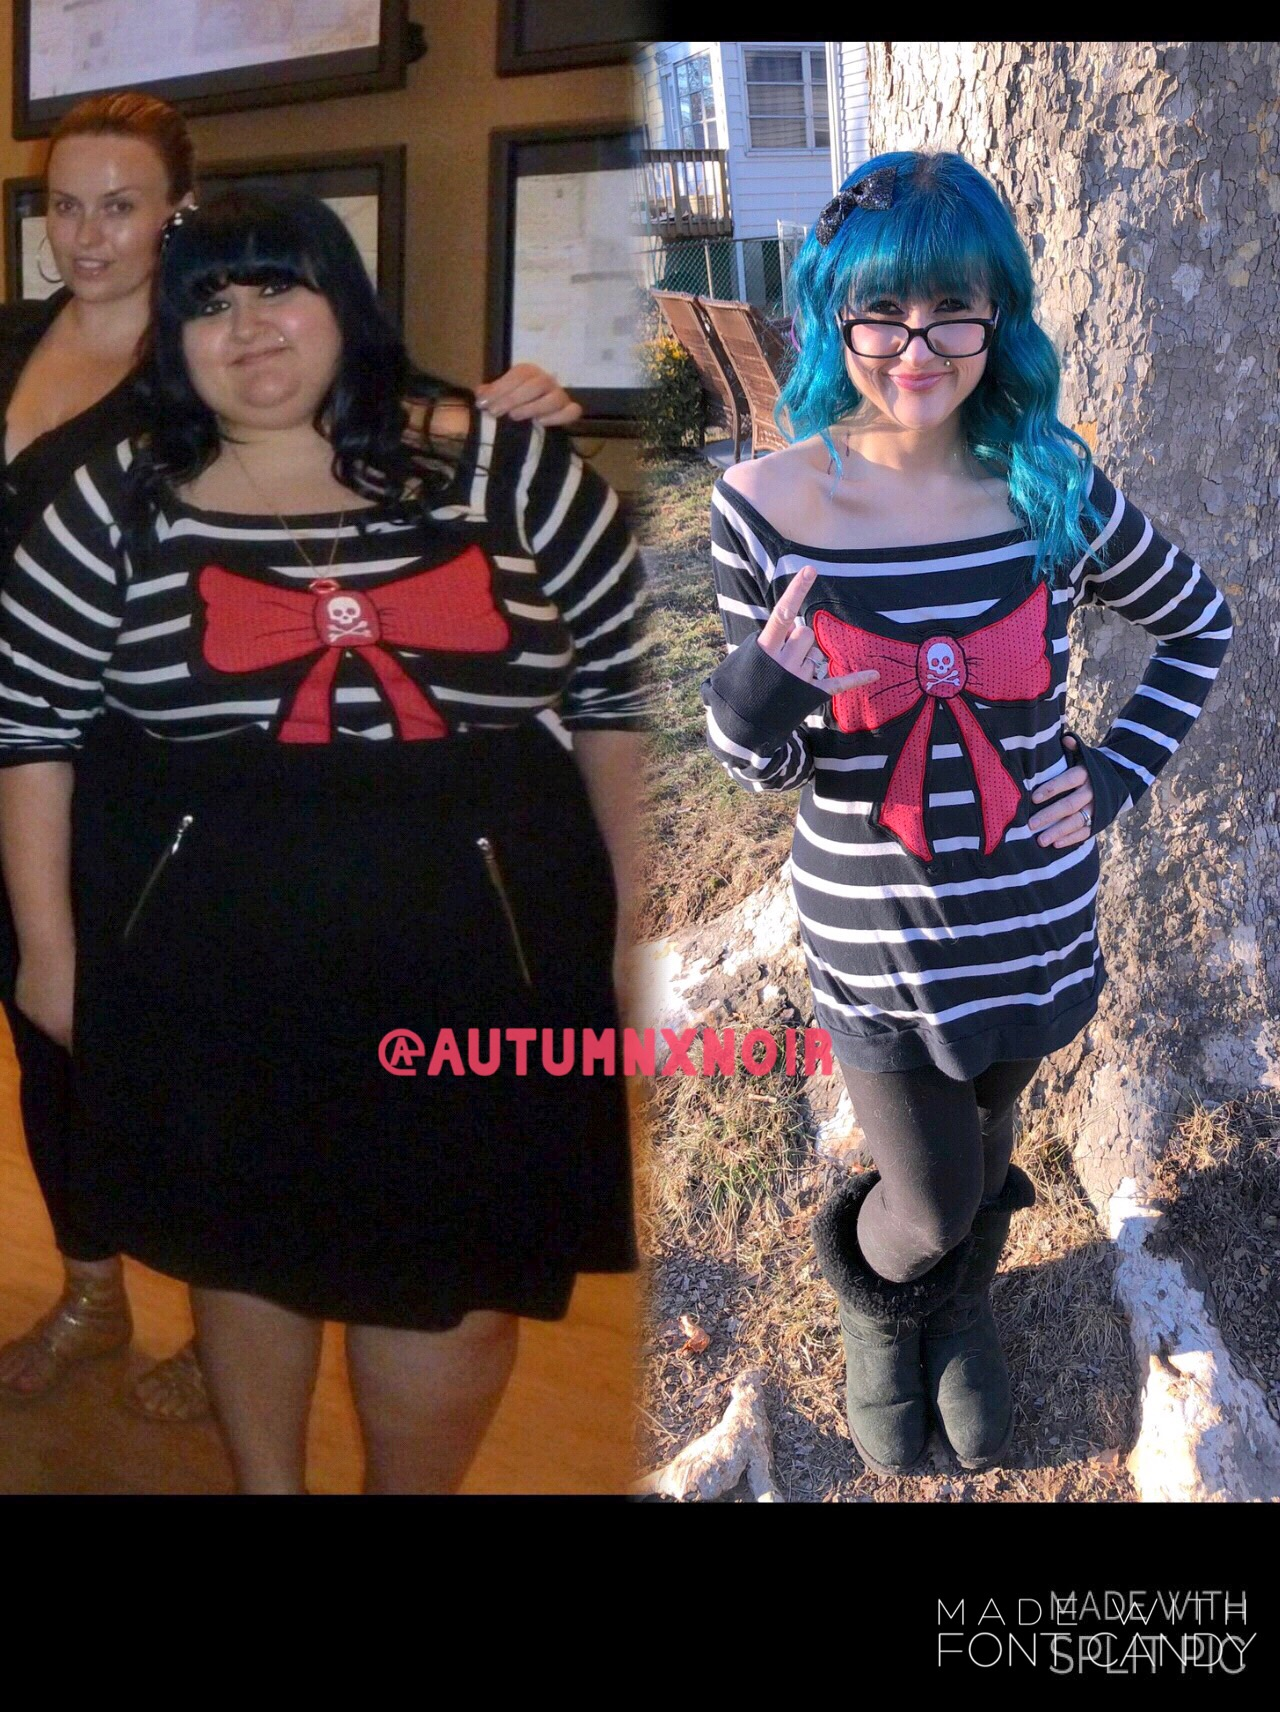 Heather lost 219 pounds! See my before and after weight loss pictures, and read amazing weight loss success stories from real women and their best weight loss diet plans and programs. Motivation to lose weight with walking and inspiration from before and after weightloss pics and photos.